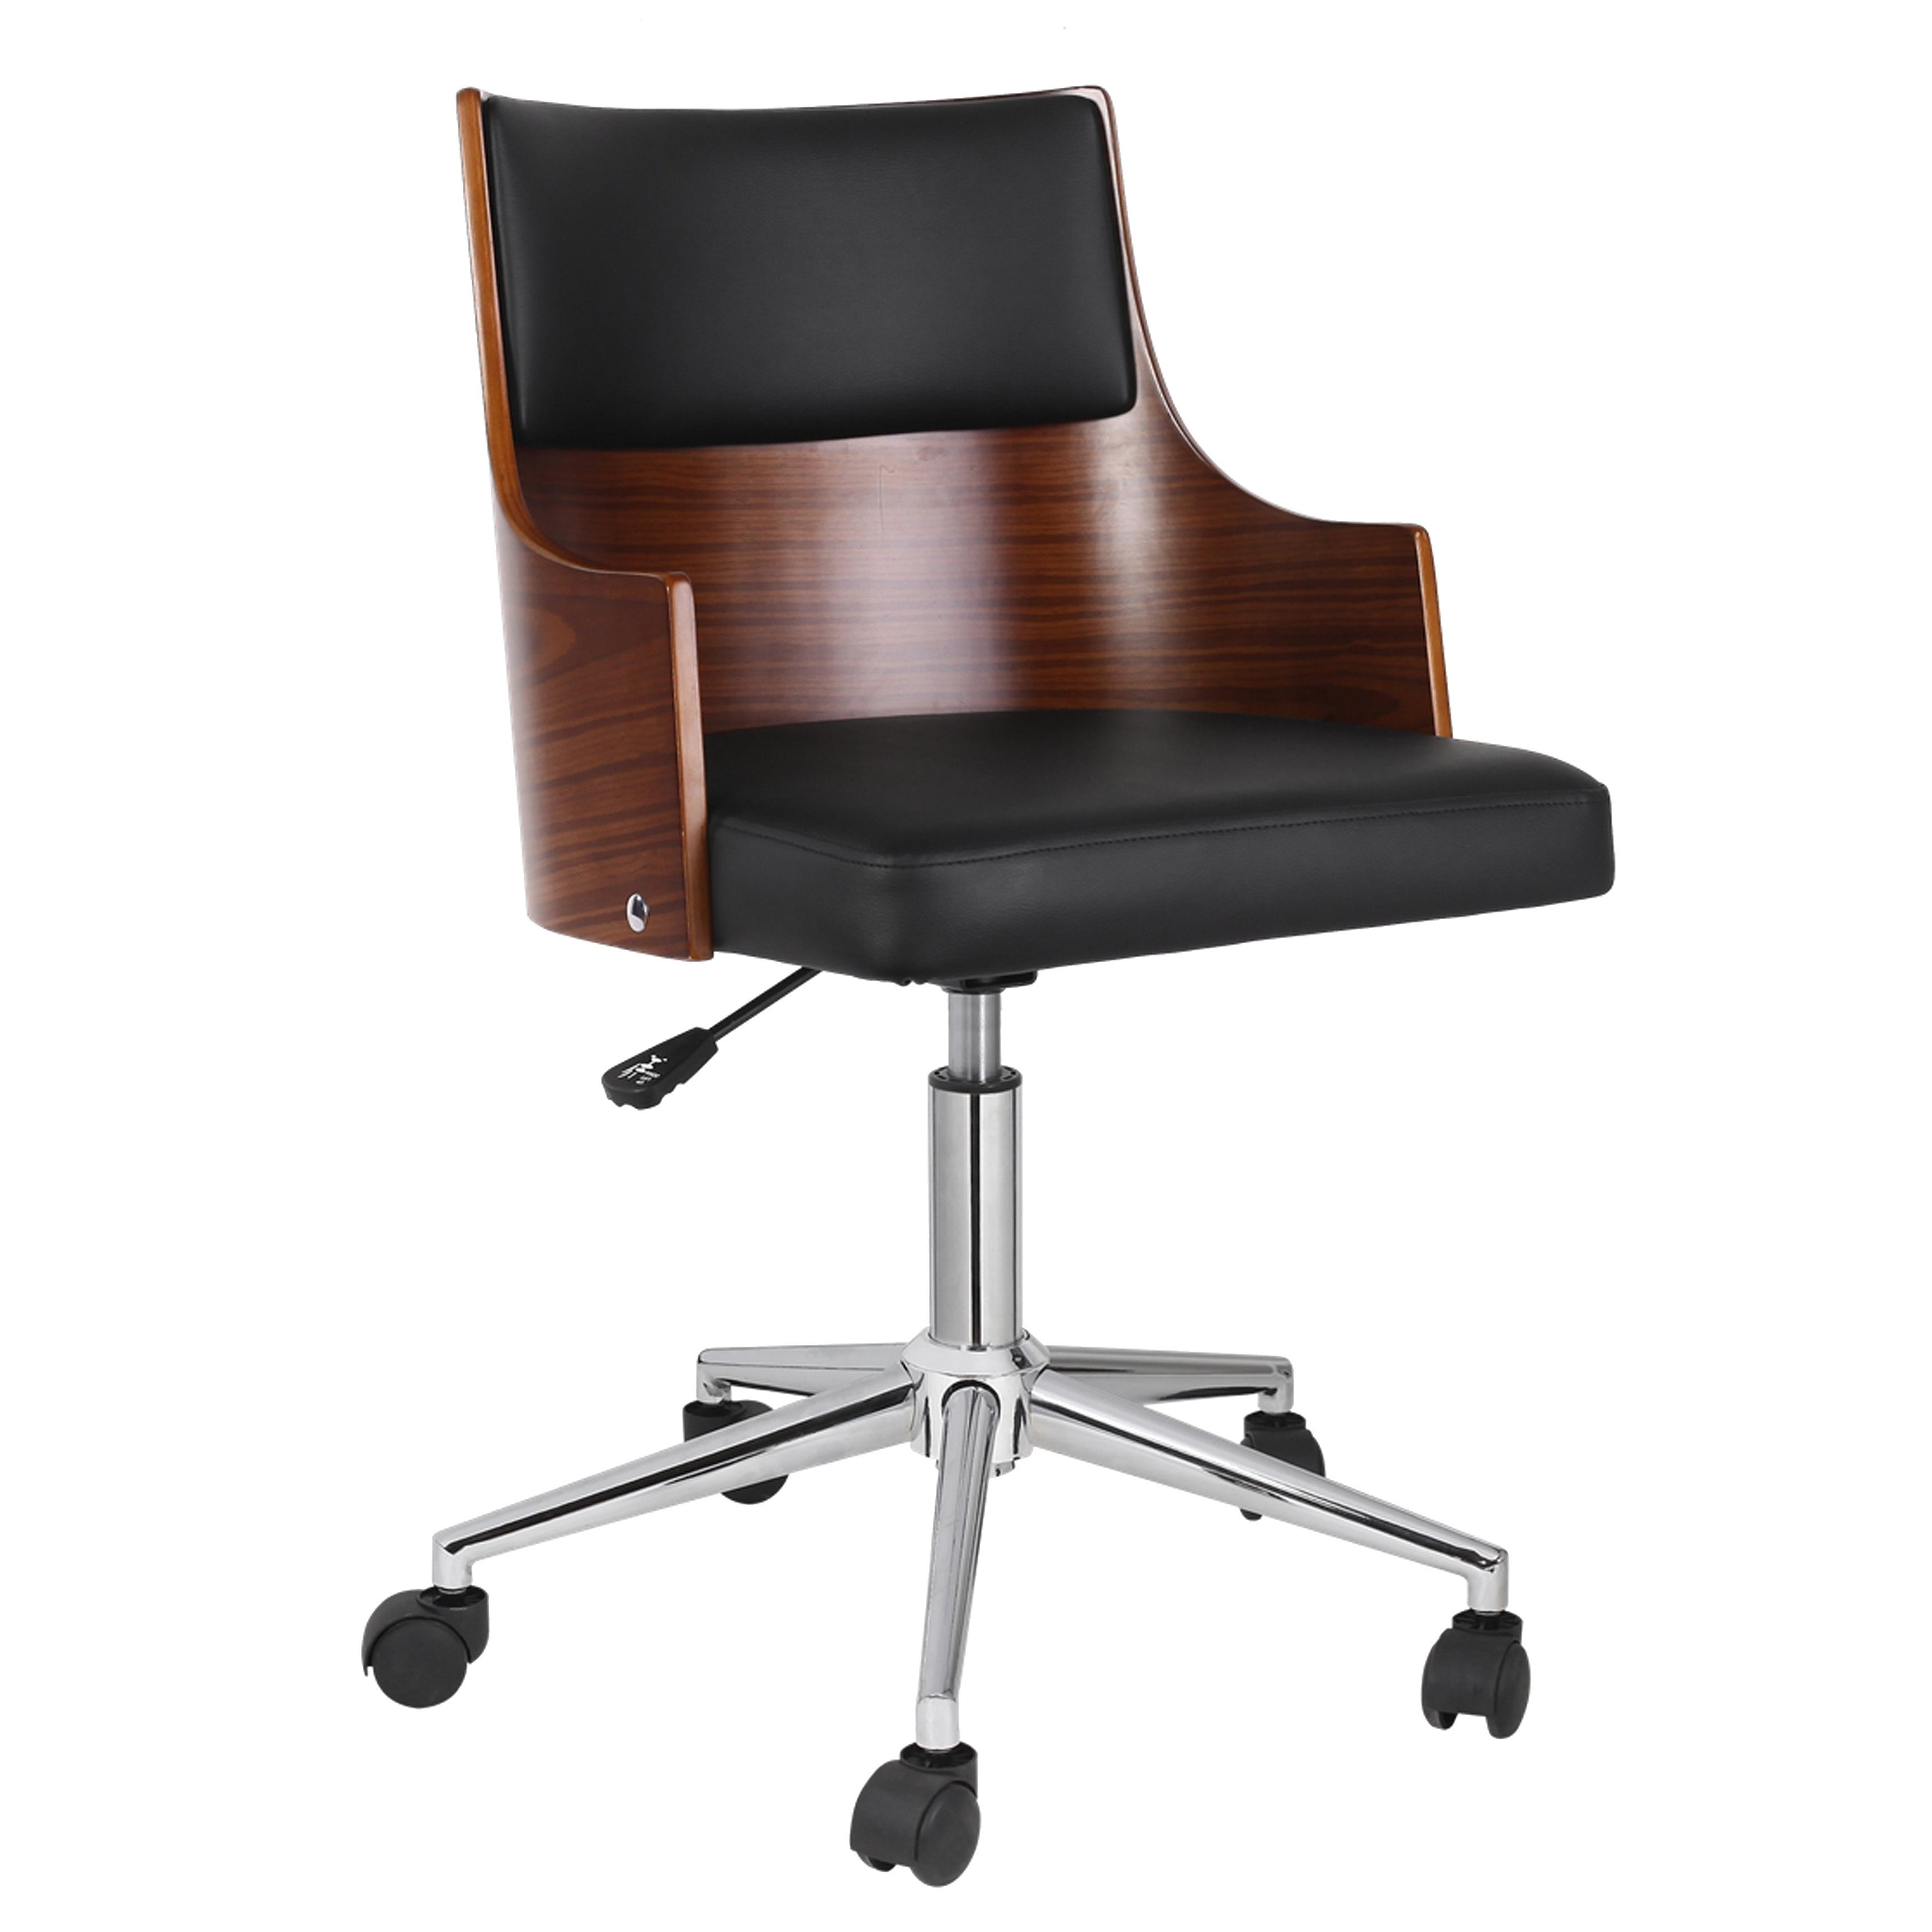 pvc home office chair. Porthos Home Office Chair With PVC Upholstery, Adjustable Height - Free Shipping Today Overstock.com 24373504 Pvc I